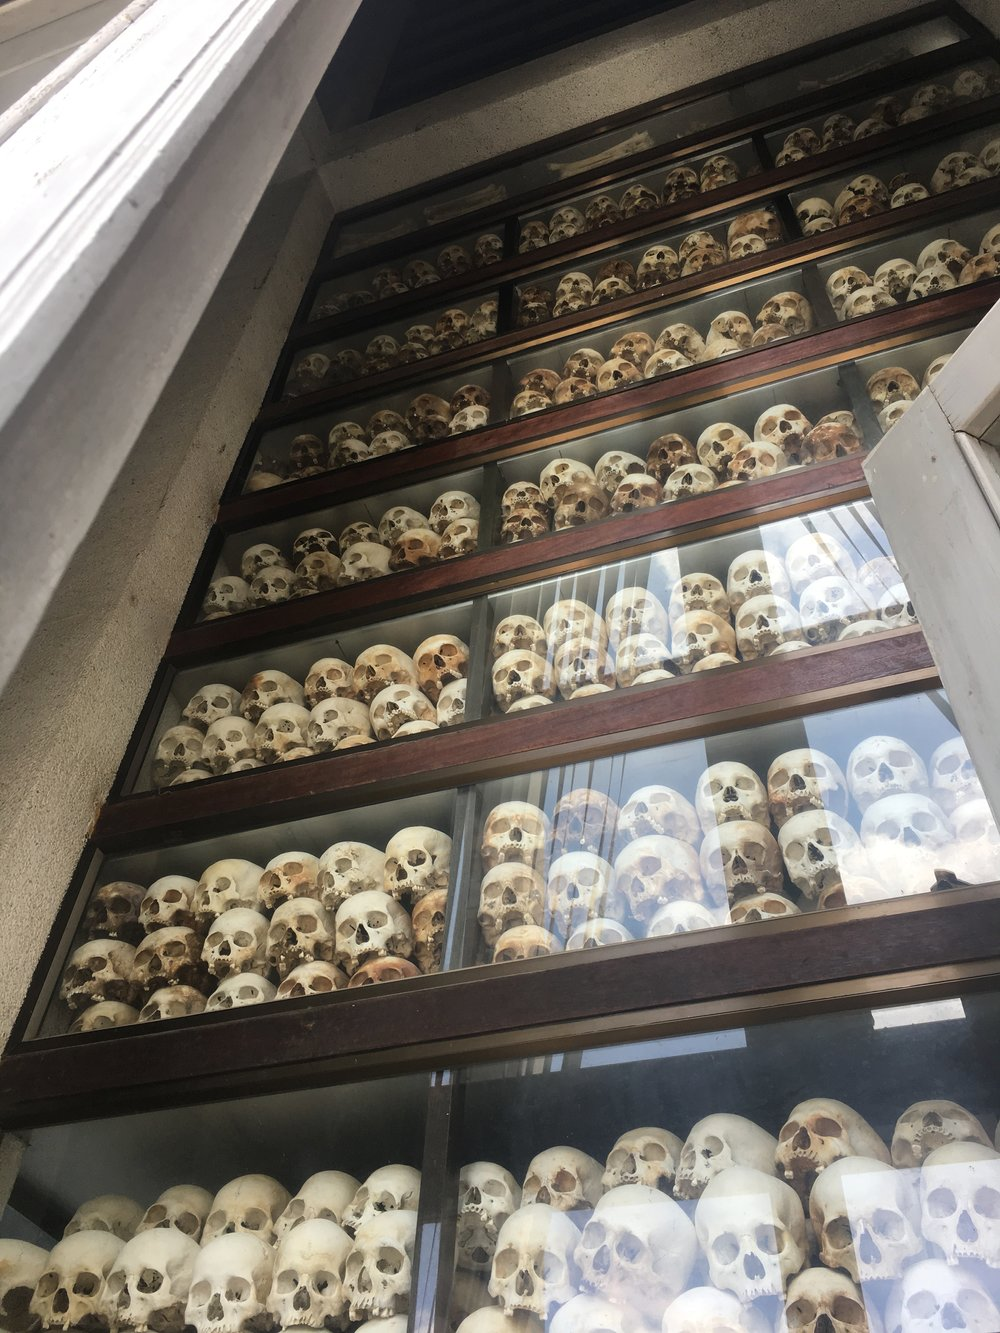 Skulls of the victims found at the Choeung Ek killing fields in 1978. Over 20,000 found dead in this particular killing field